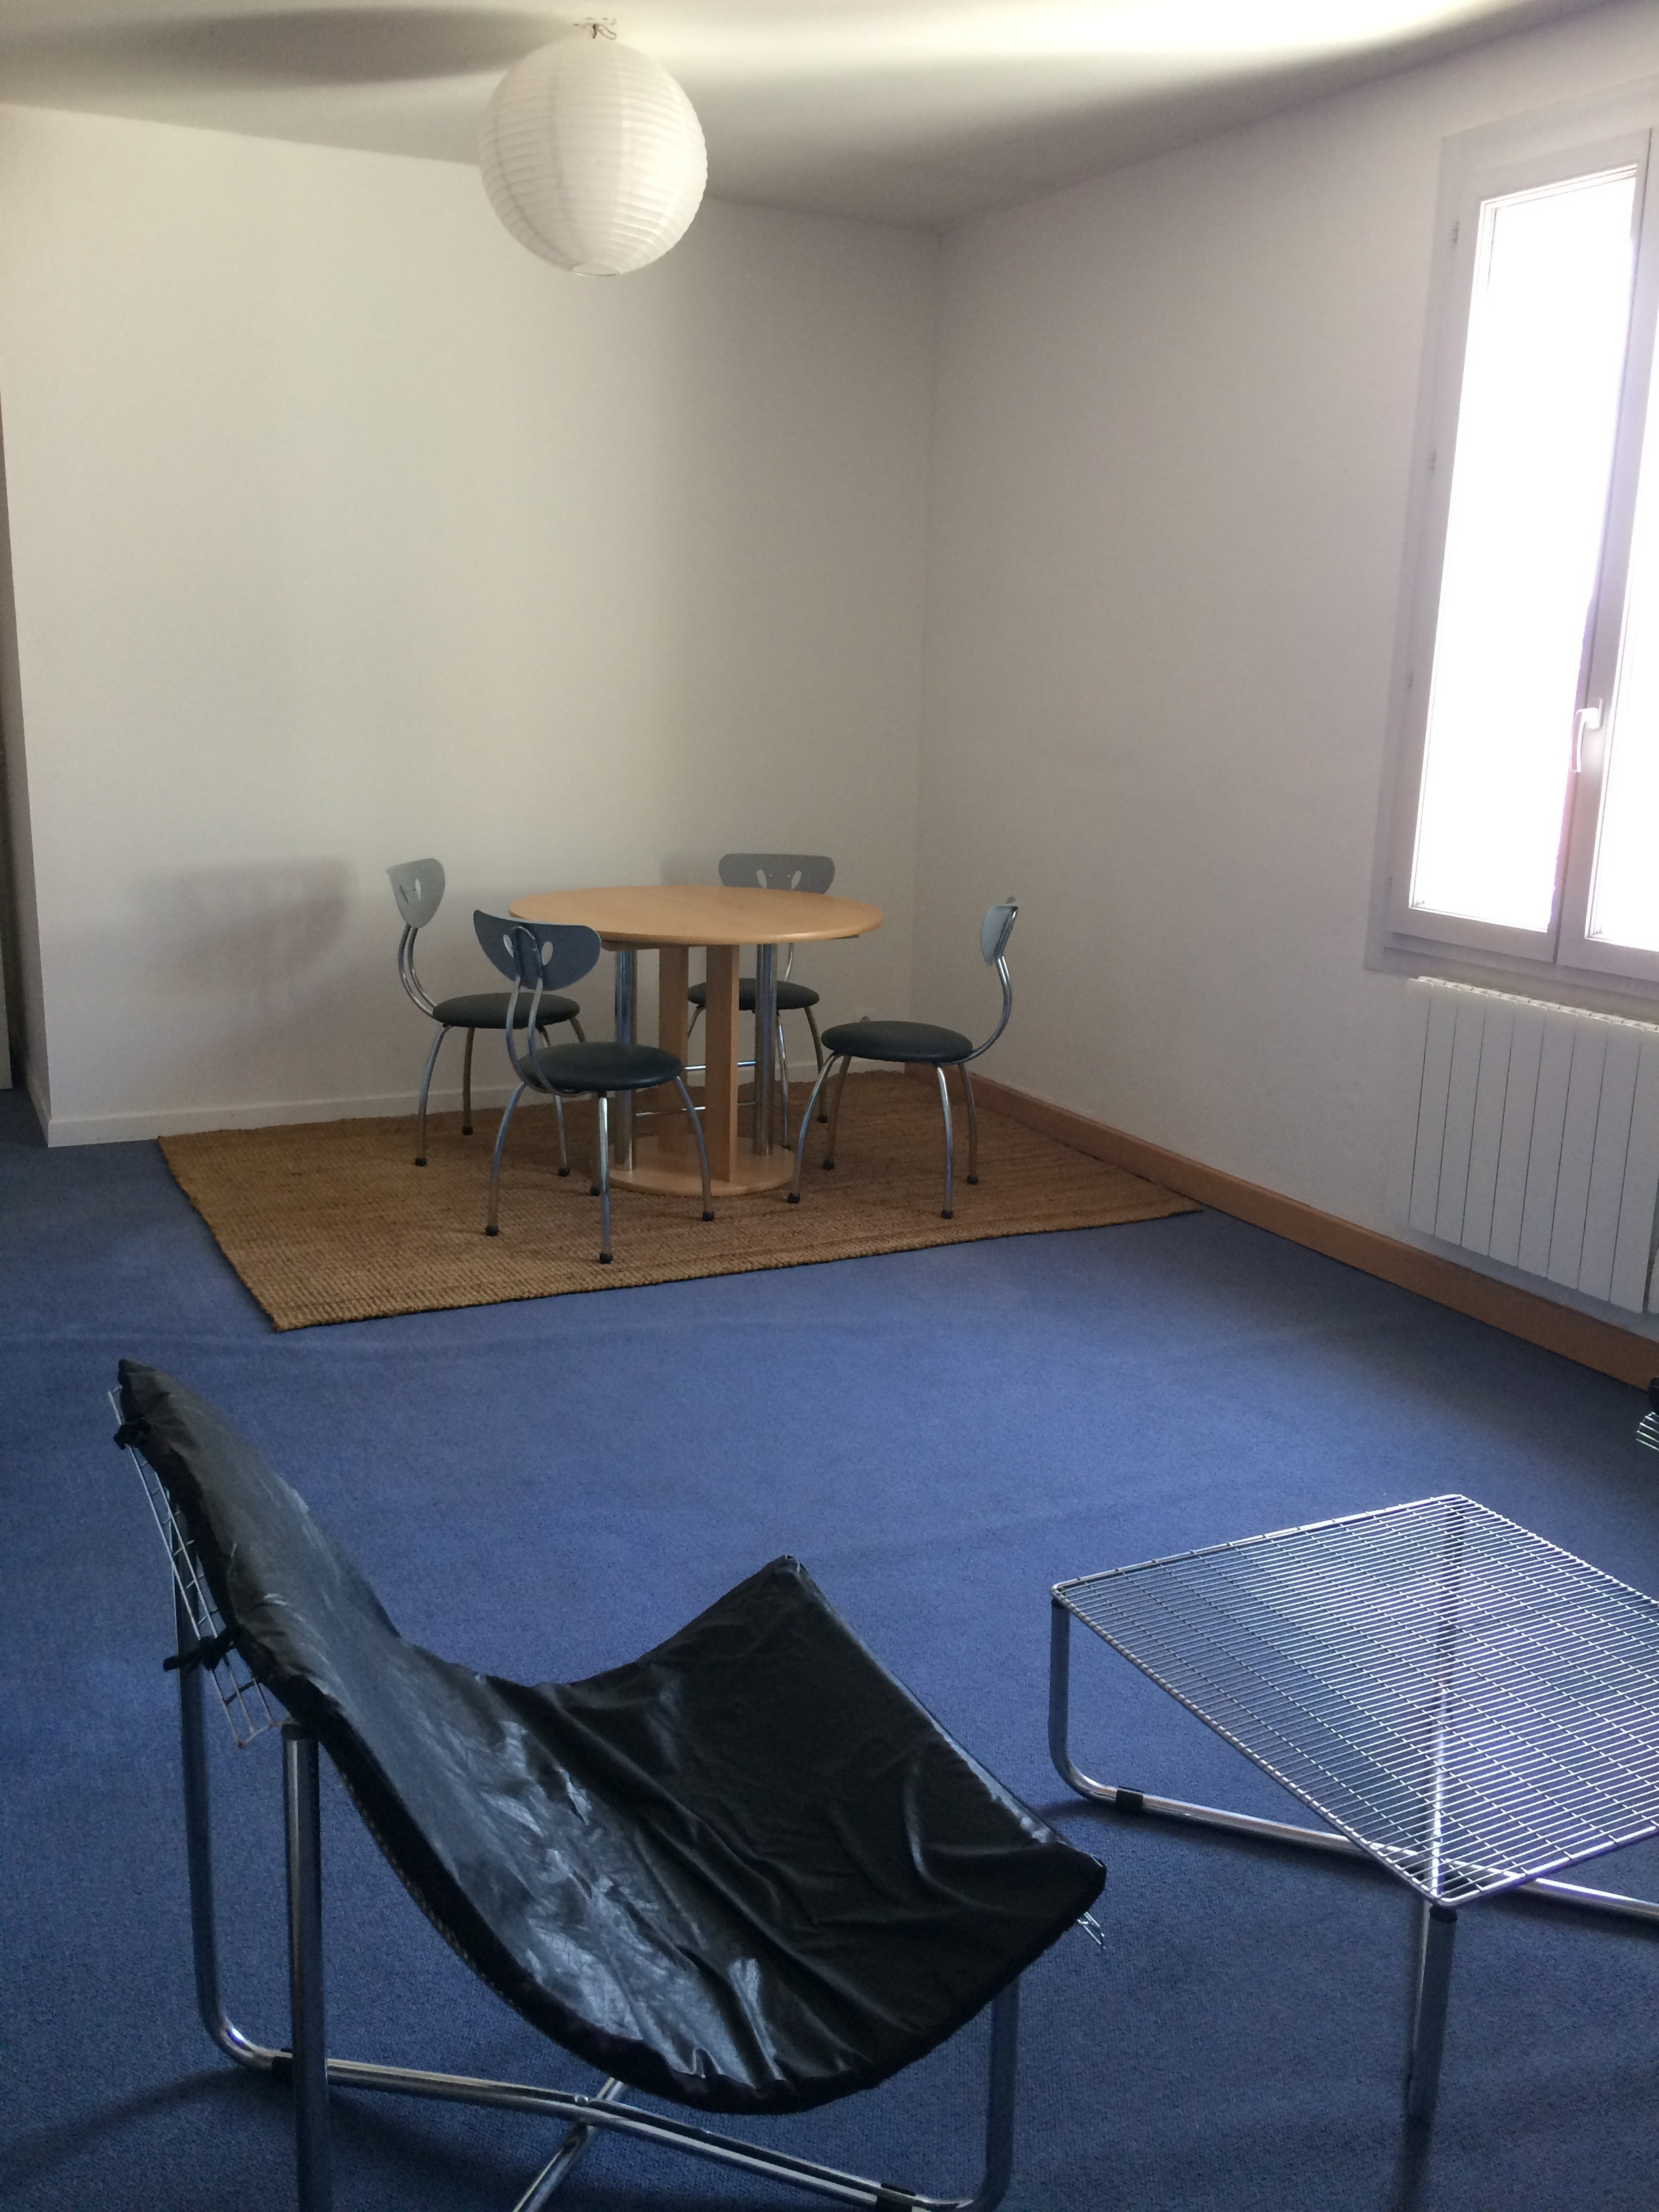 Housing of 58 m² For rent